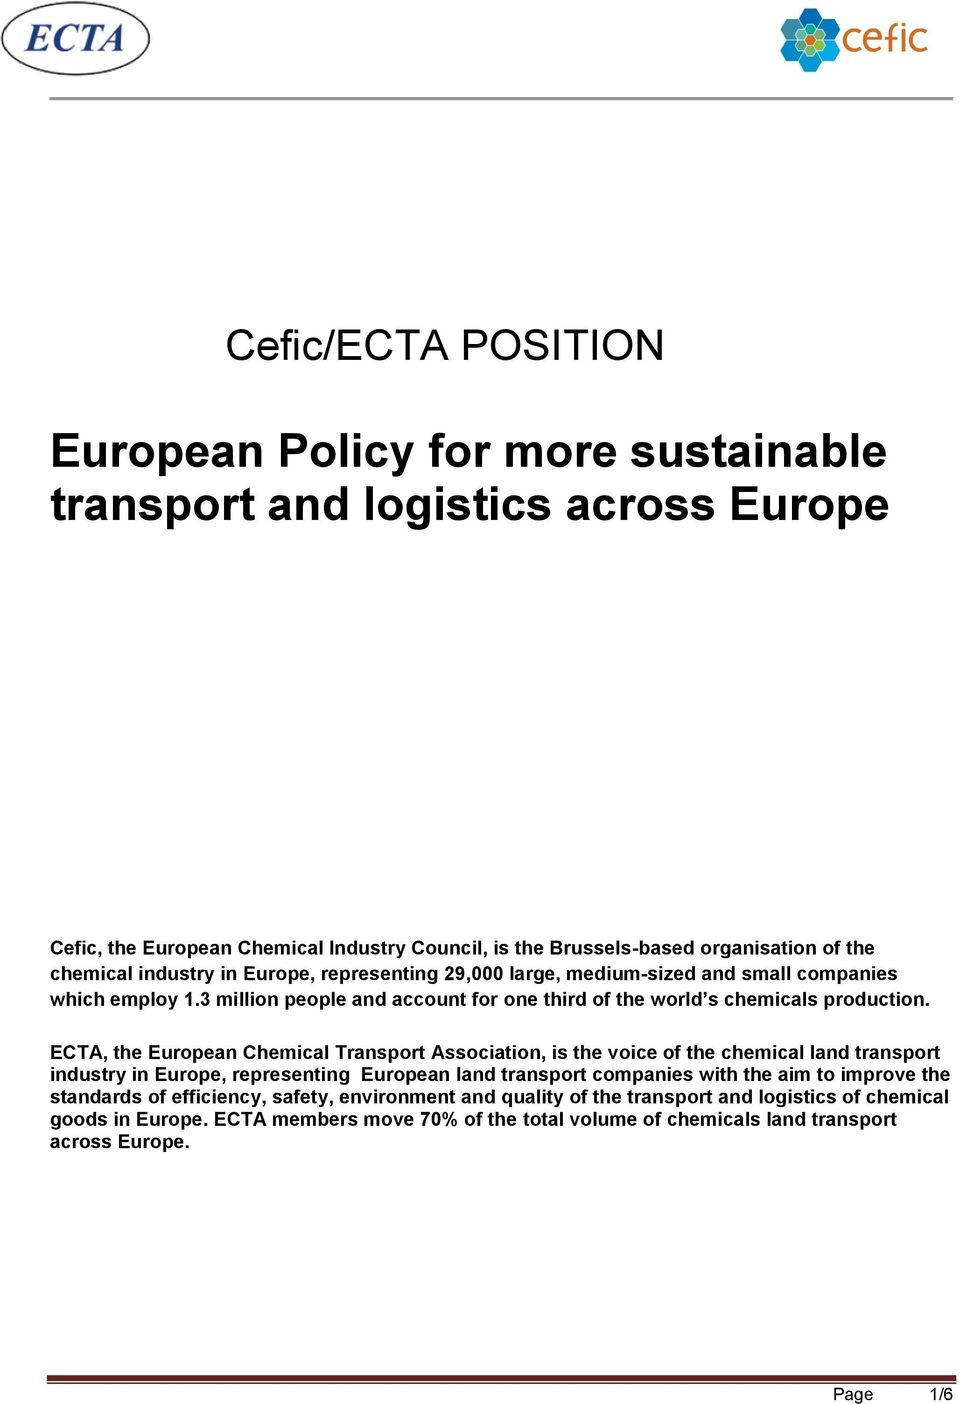 ECTA, the European Chemical Transport Association, is the voice of the chemical land transport industry in Europe, representing European land transport companies with the aim to improve the